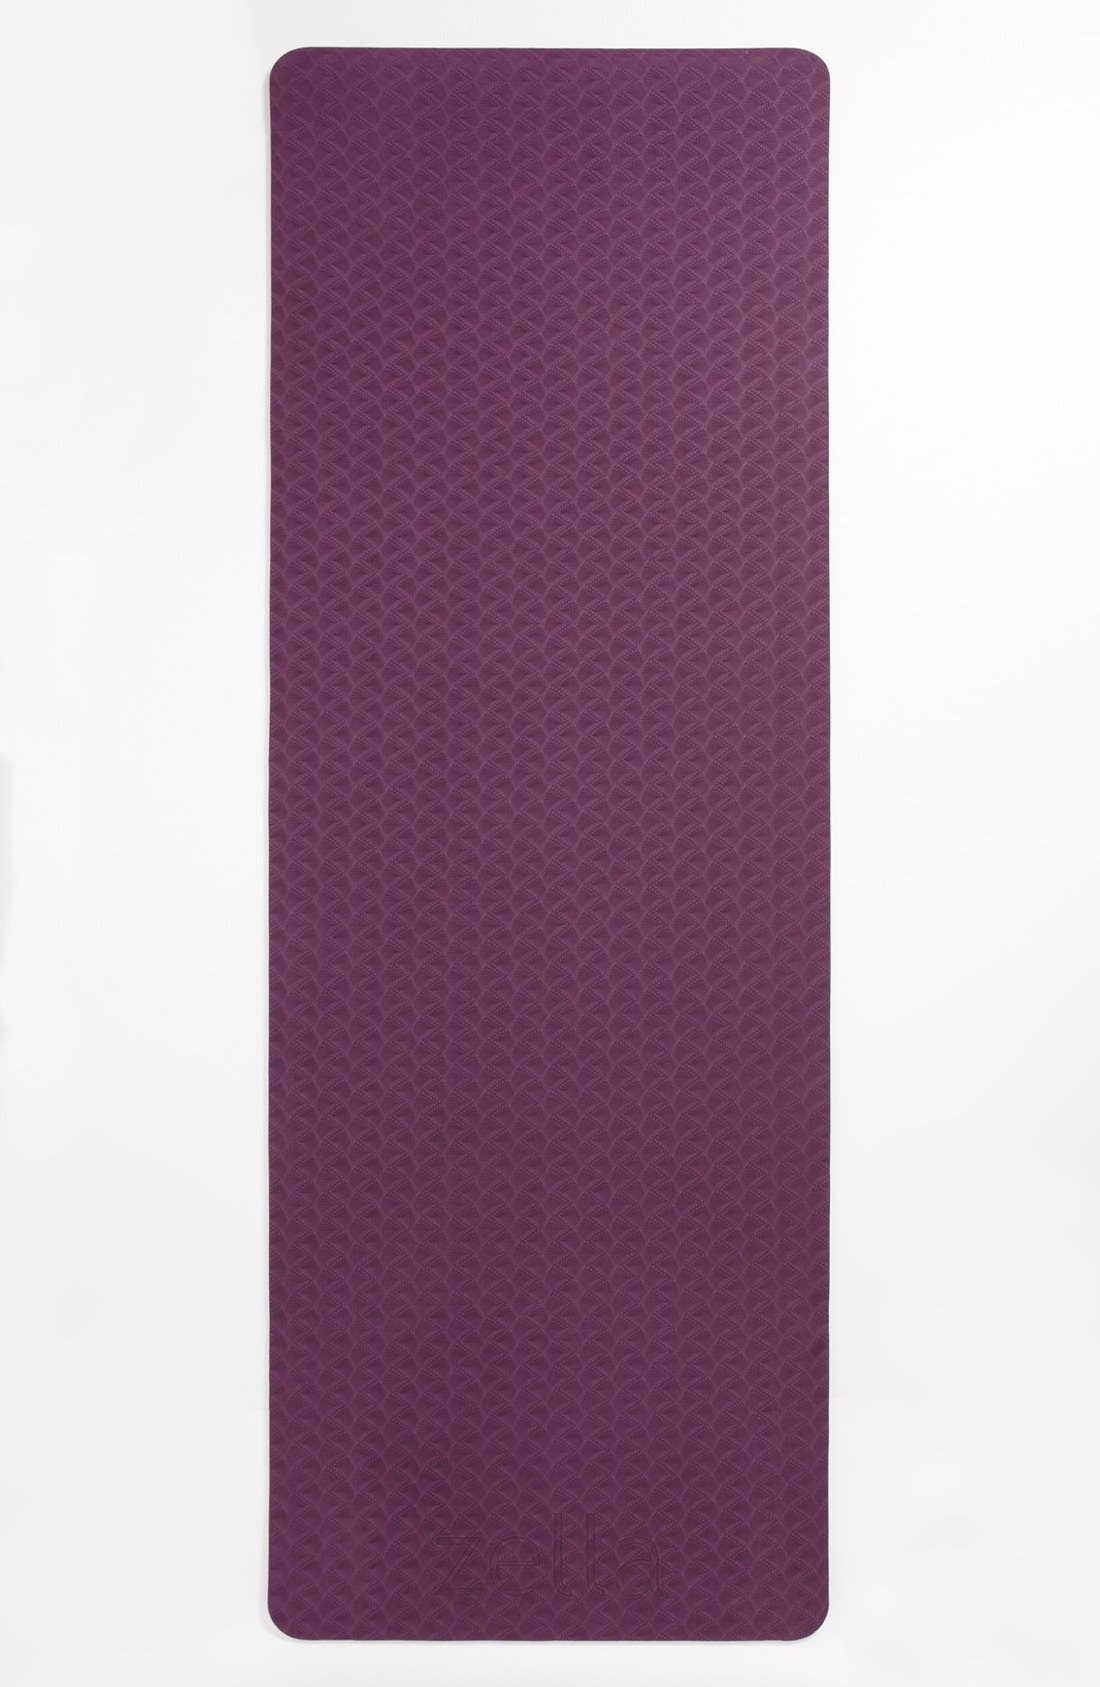 Yoga Mat with Tote & Strap Carrier,                             Alternate thumbnail 2, color,                             650